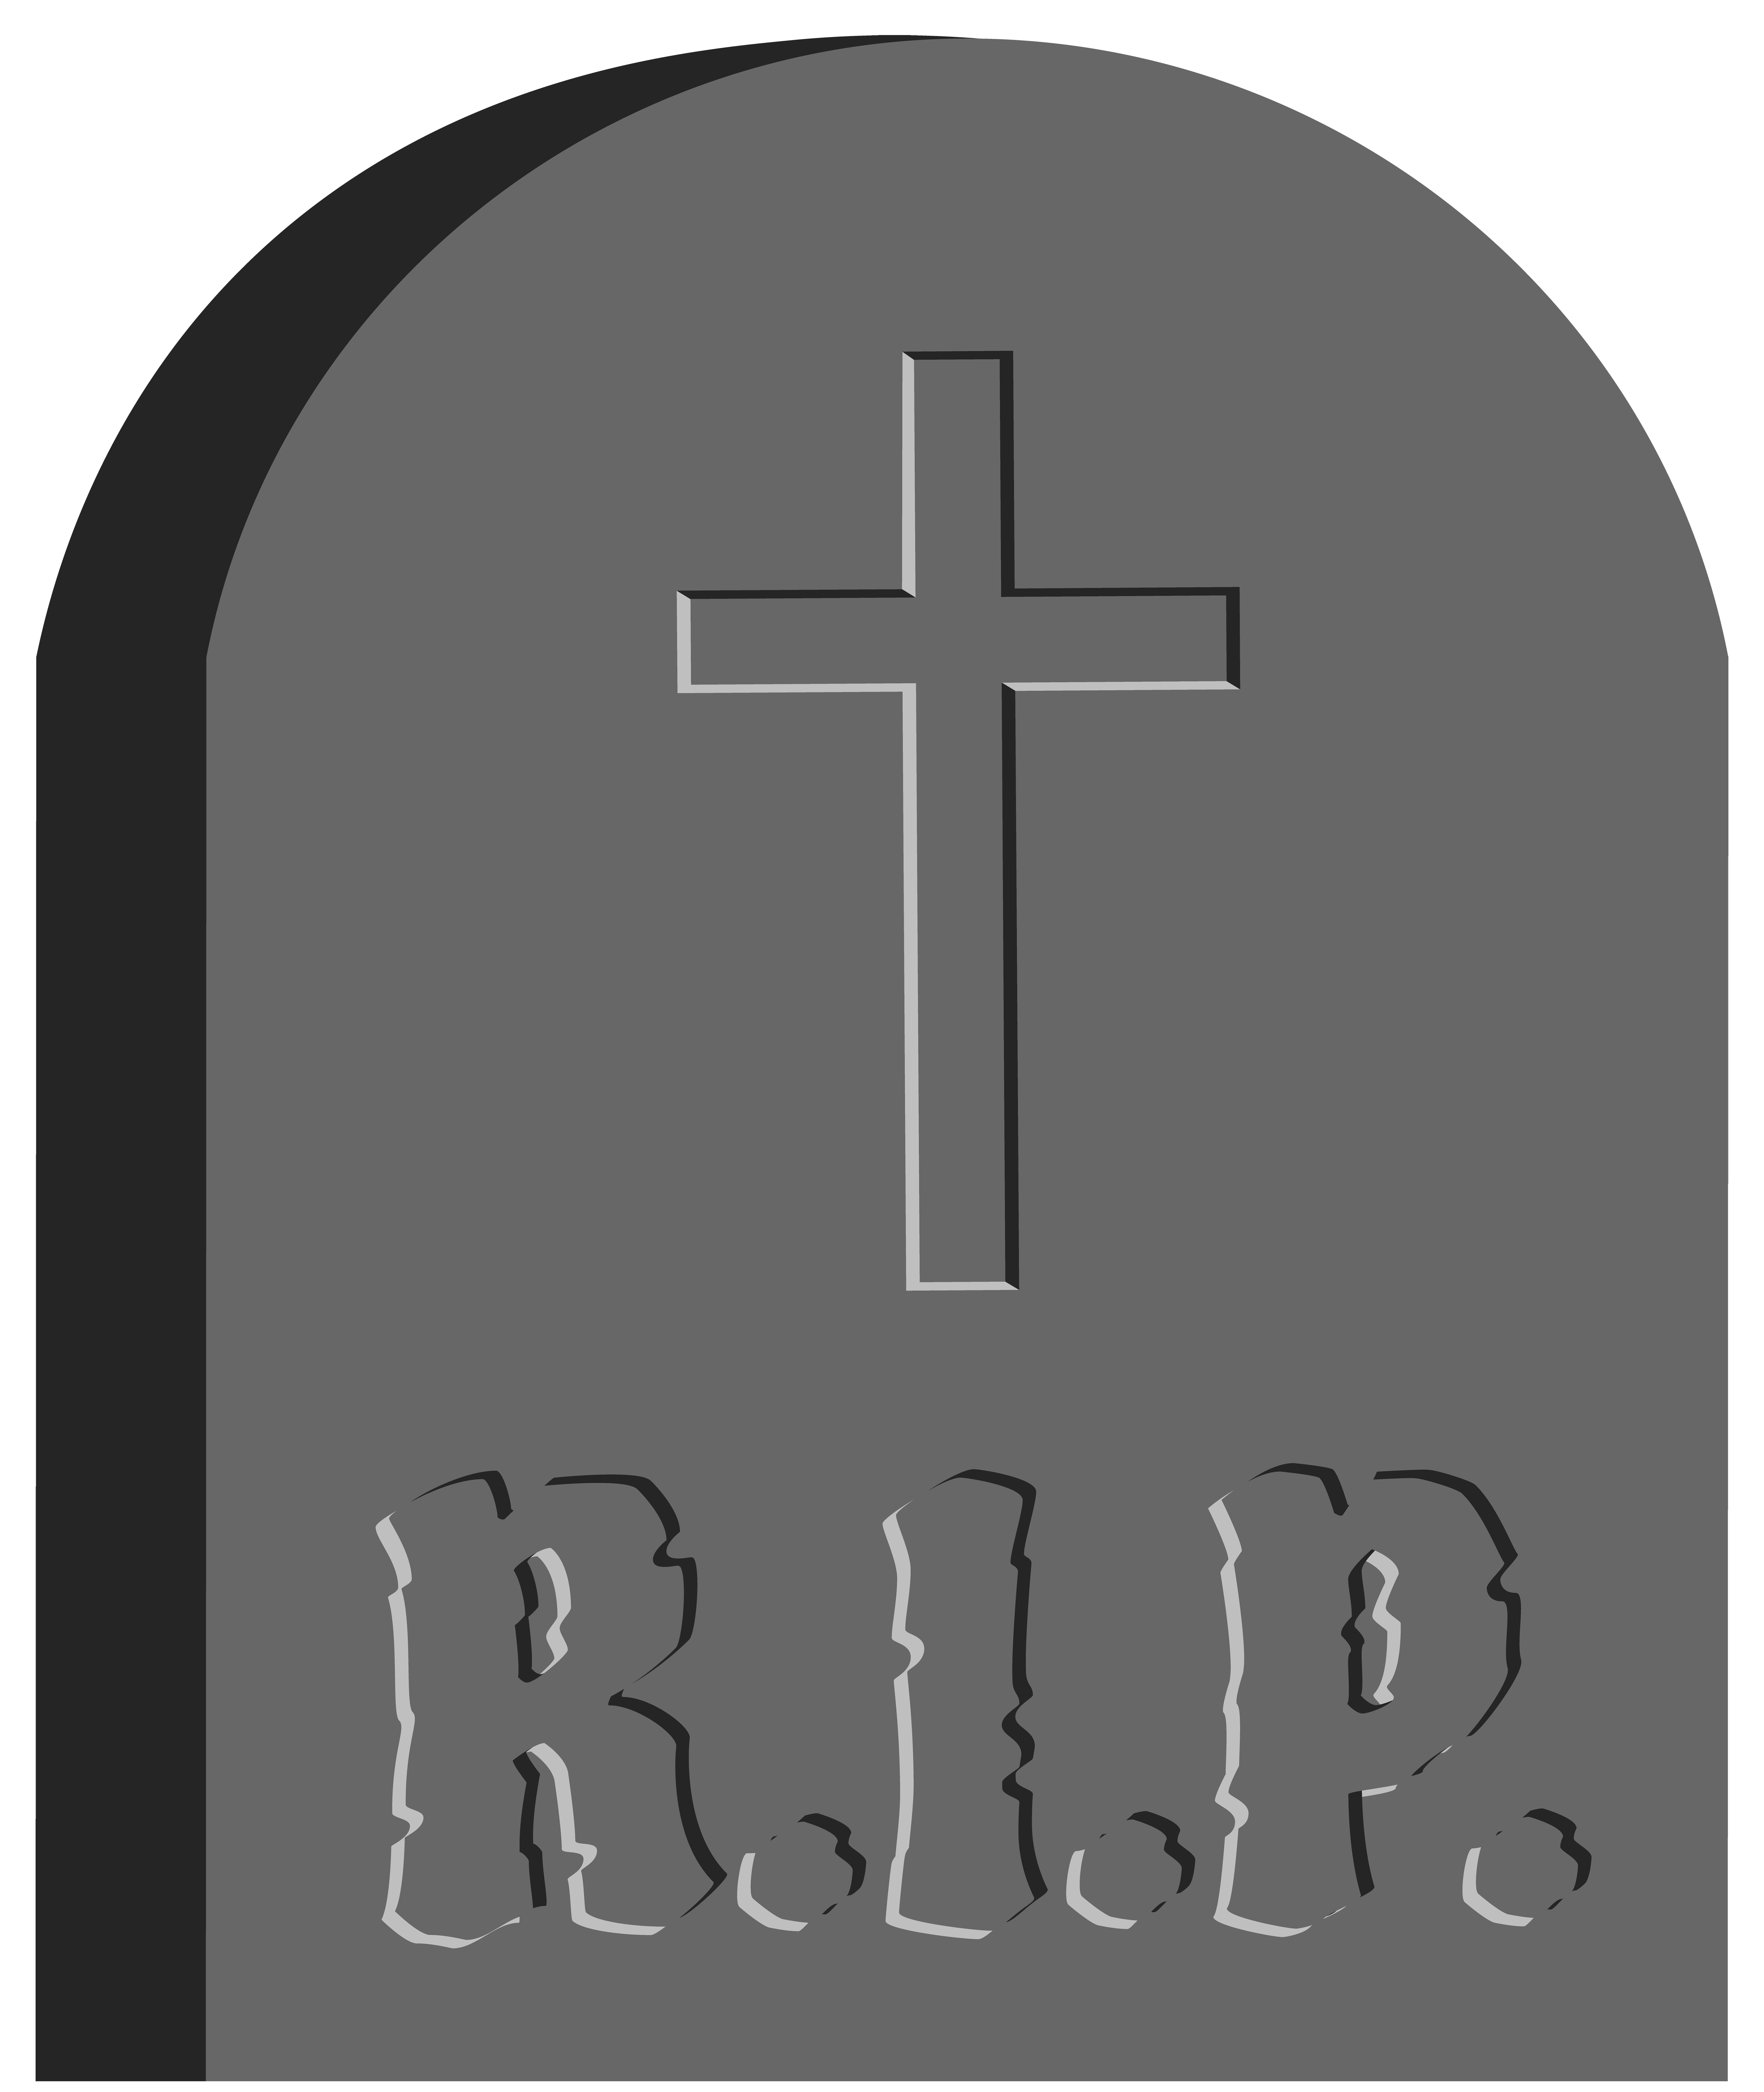 Png rip. Halloween tombstone clip art